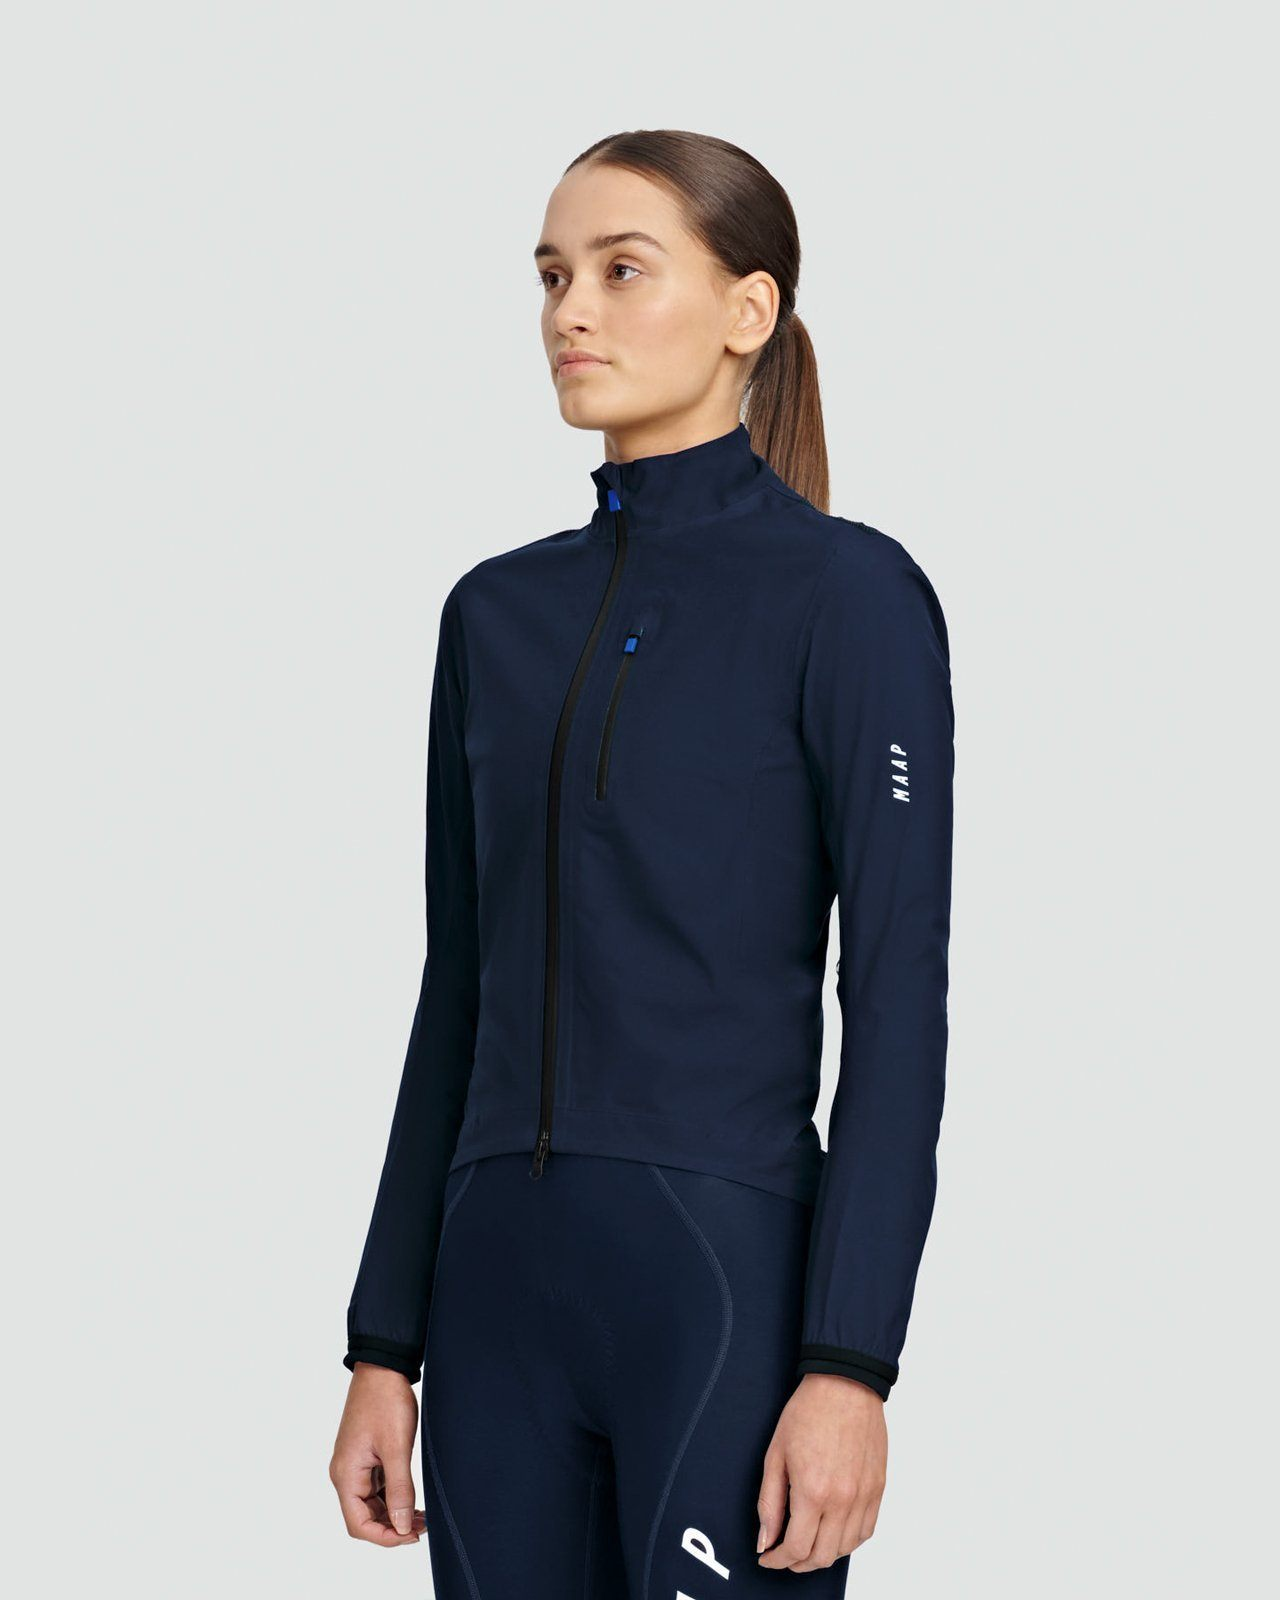 MAAP Women's Ascend Pro Rain Jacket - Navy Cycling Jacket MAAP